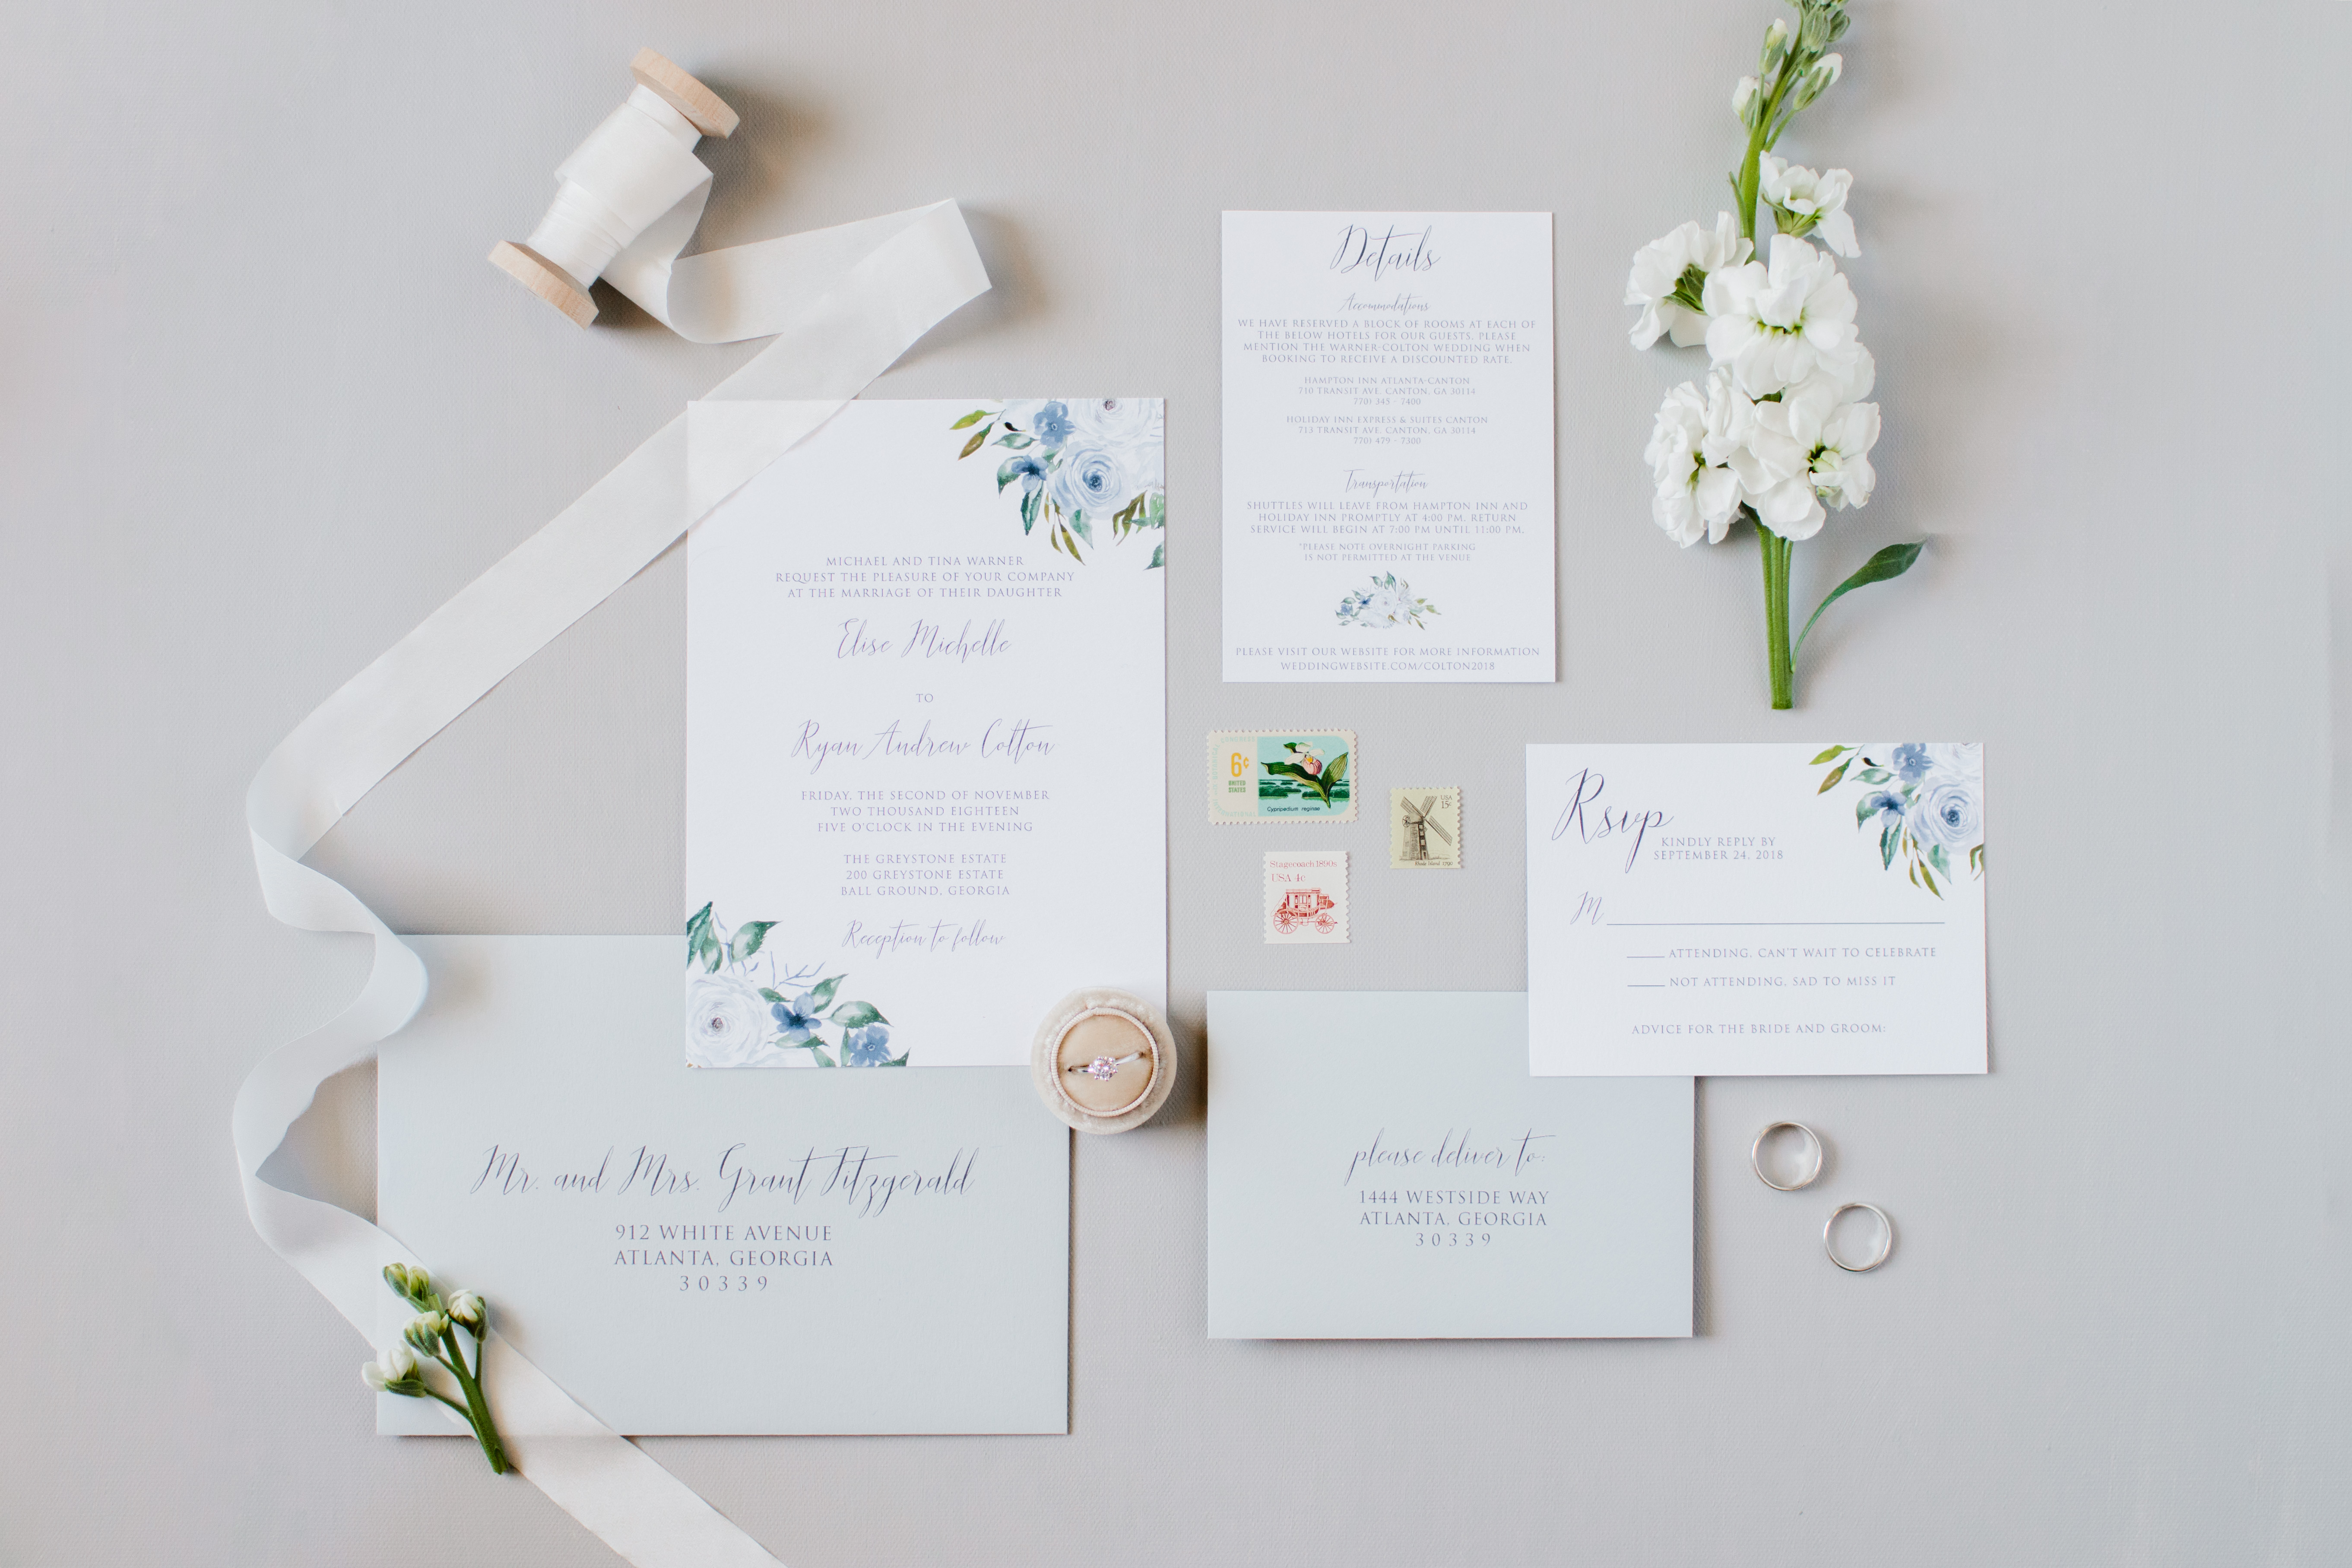 Floral Wedding Invitations.Dusty Blue Floral Wedding Invitation Sample Oh My Designs By Steph